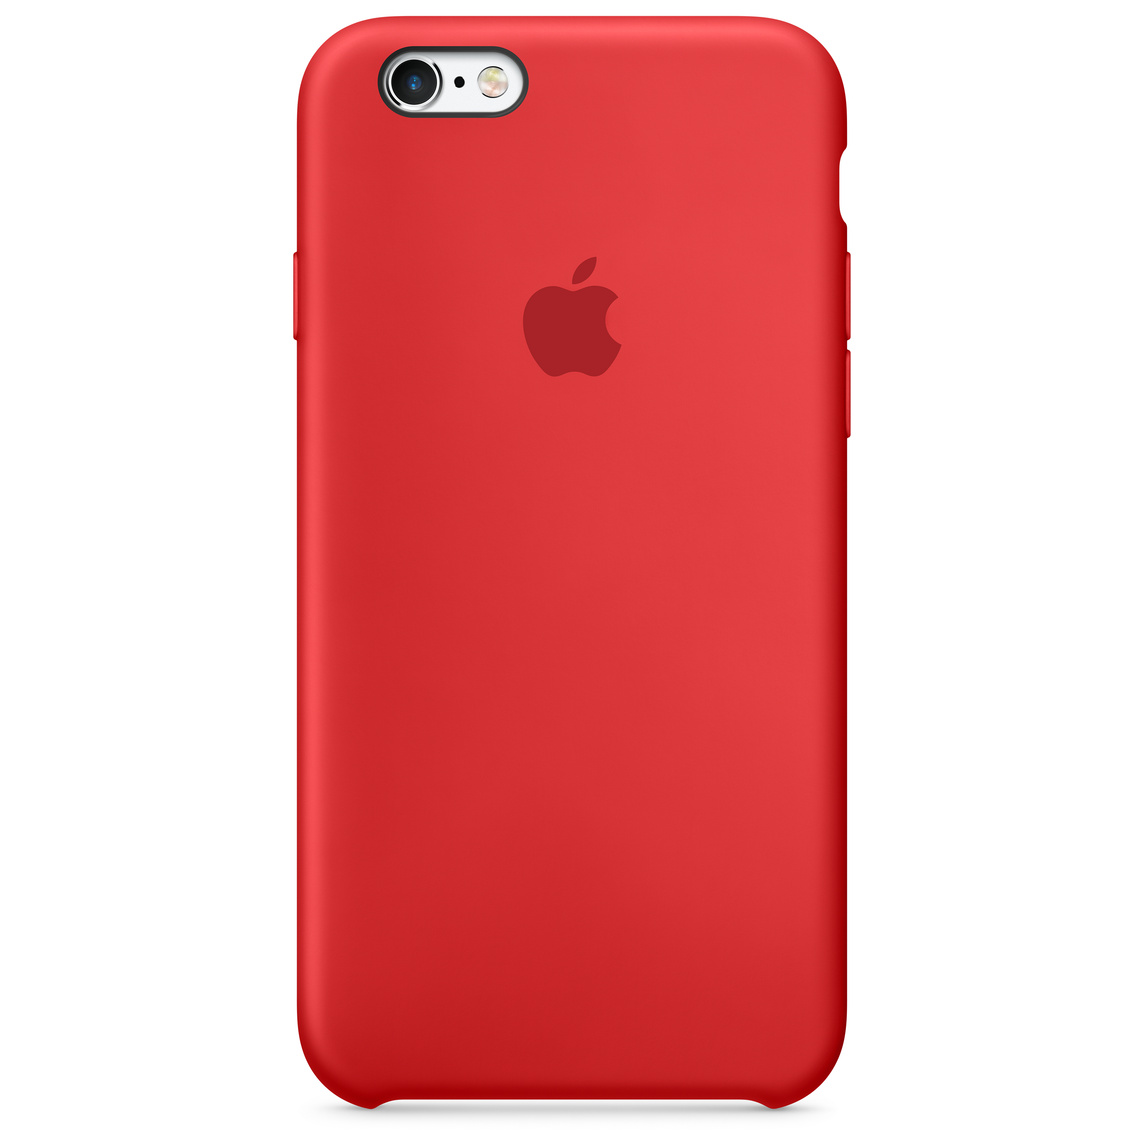 timeless design c9a45 bd6f0 iPhone 6 / 6s Silicone Case - (PRODUCT)RED